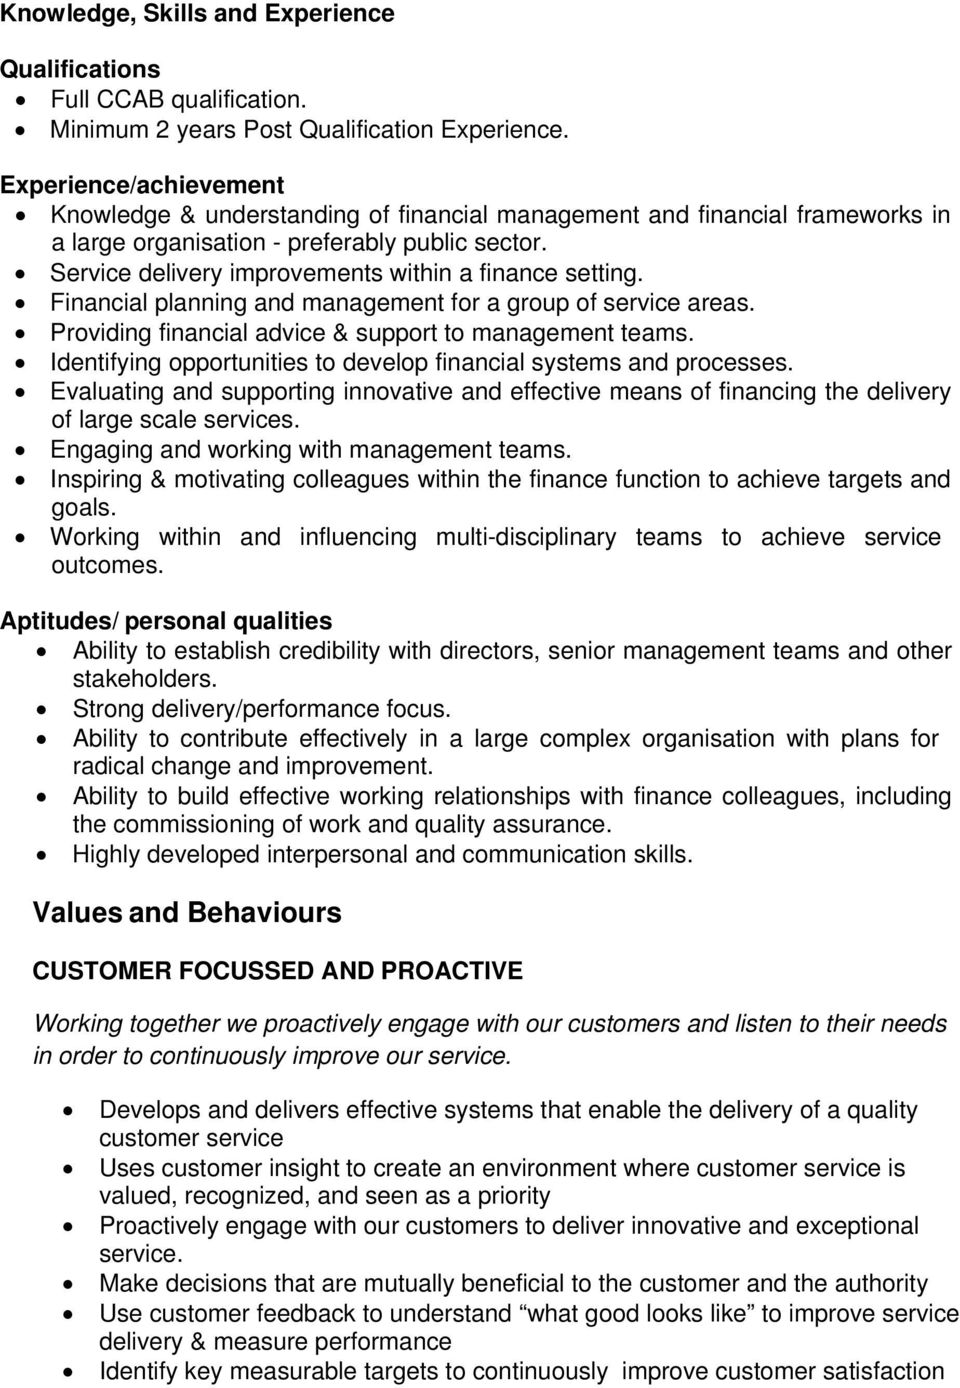 Service delivery improvements within a finance setting. Financial planning and management for a group of service areas. Providing financial advice & support to management teams.